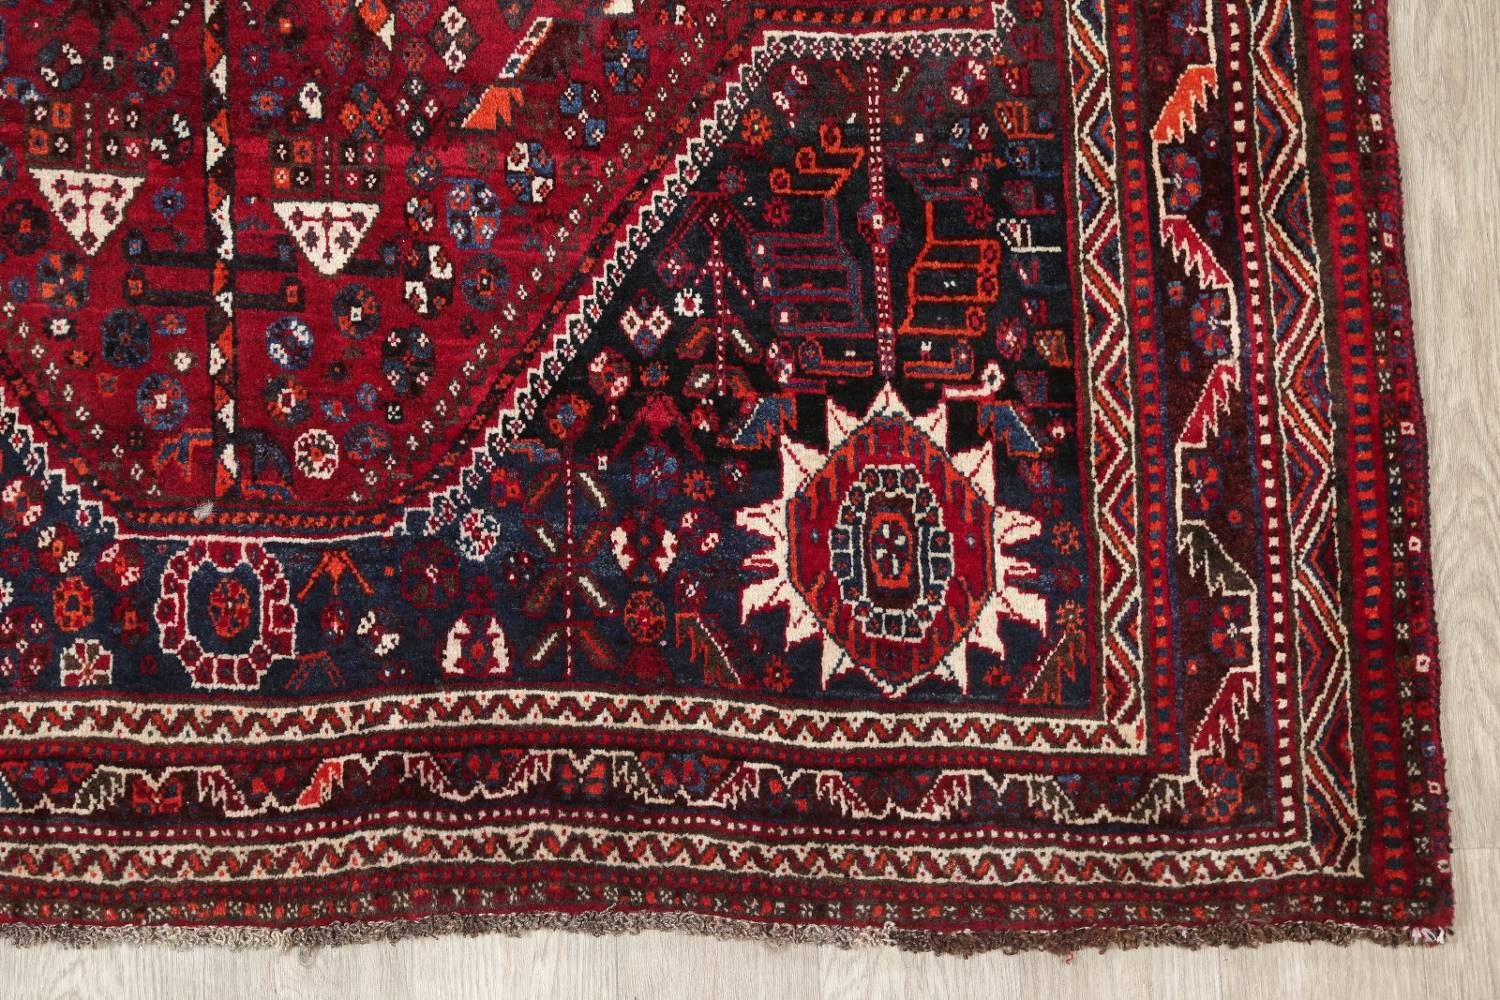 Antique Red Tribal Geometric Qashqai Persian Hand-Knotted 5x8 Wool Area Rug image 6